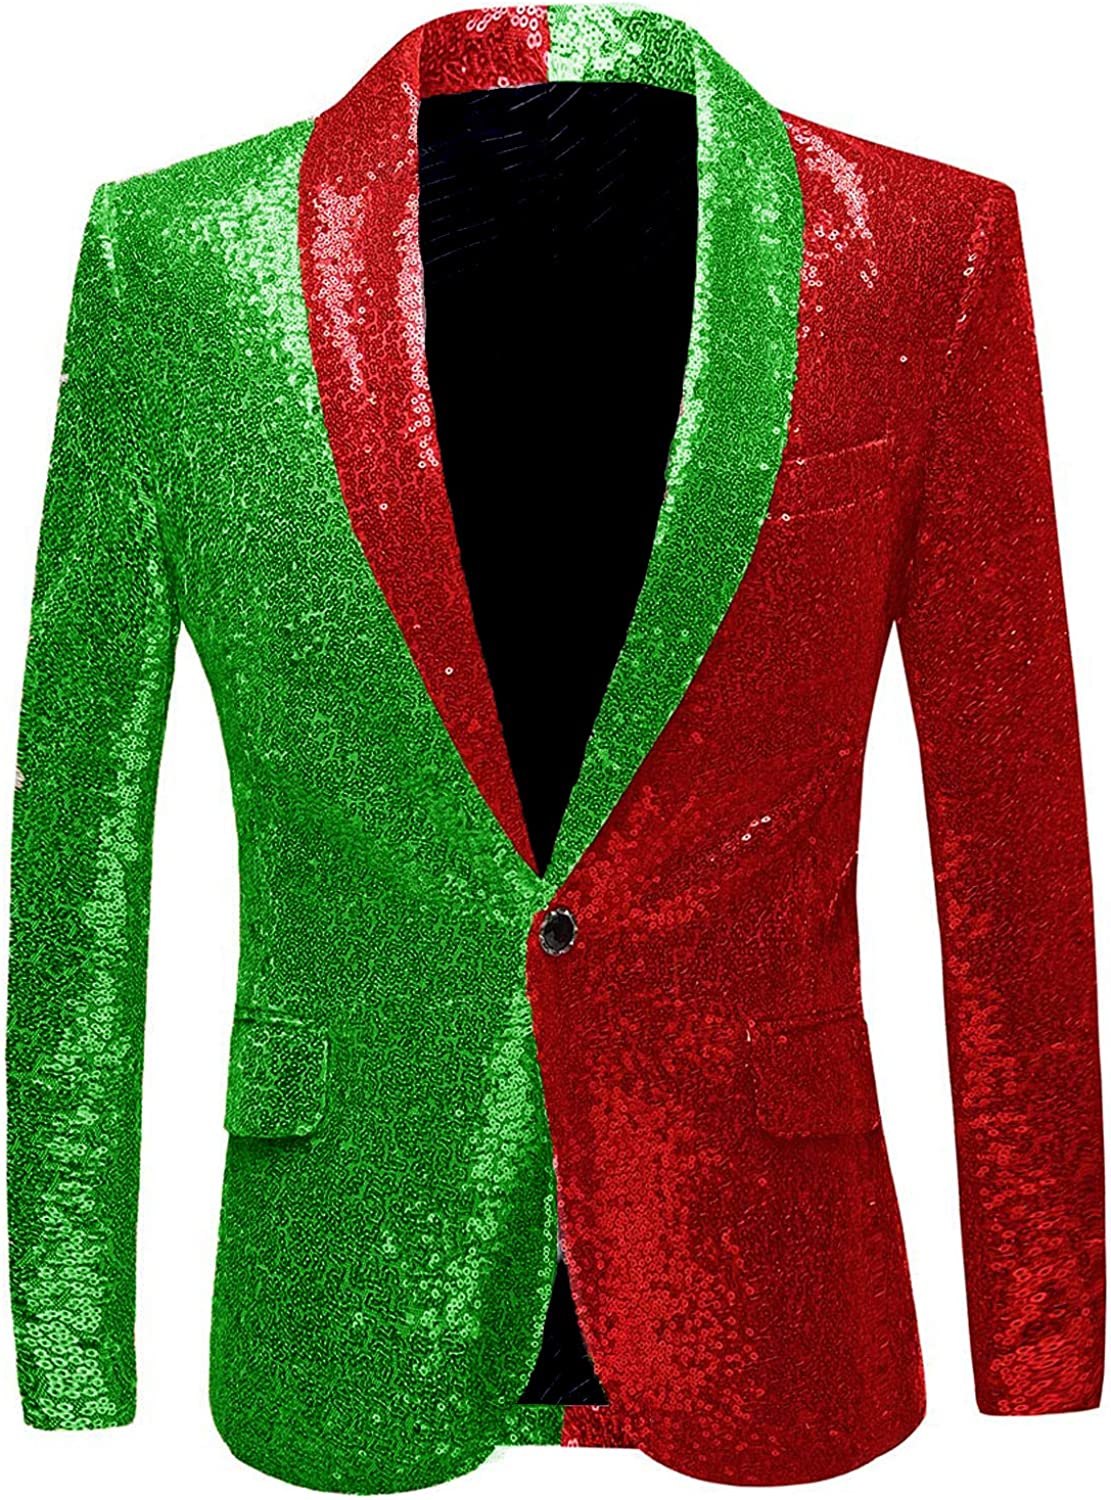 JEXJ Sequin Tuxedo Jacket for Men Two Colors Slim Fit Blazers for Holiday Show Party JJK020